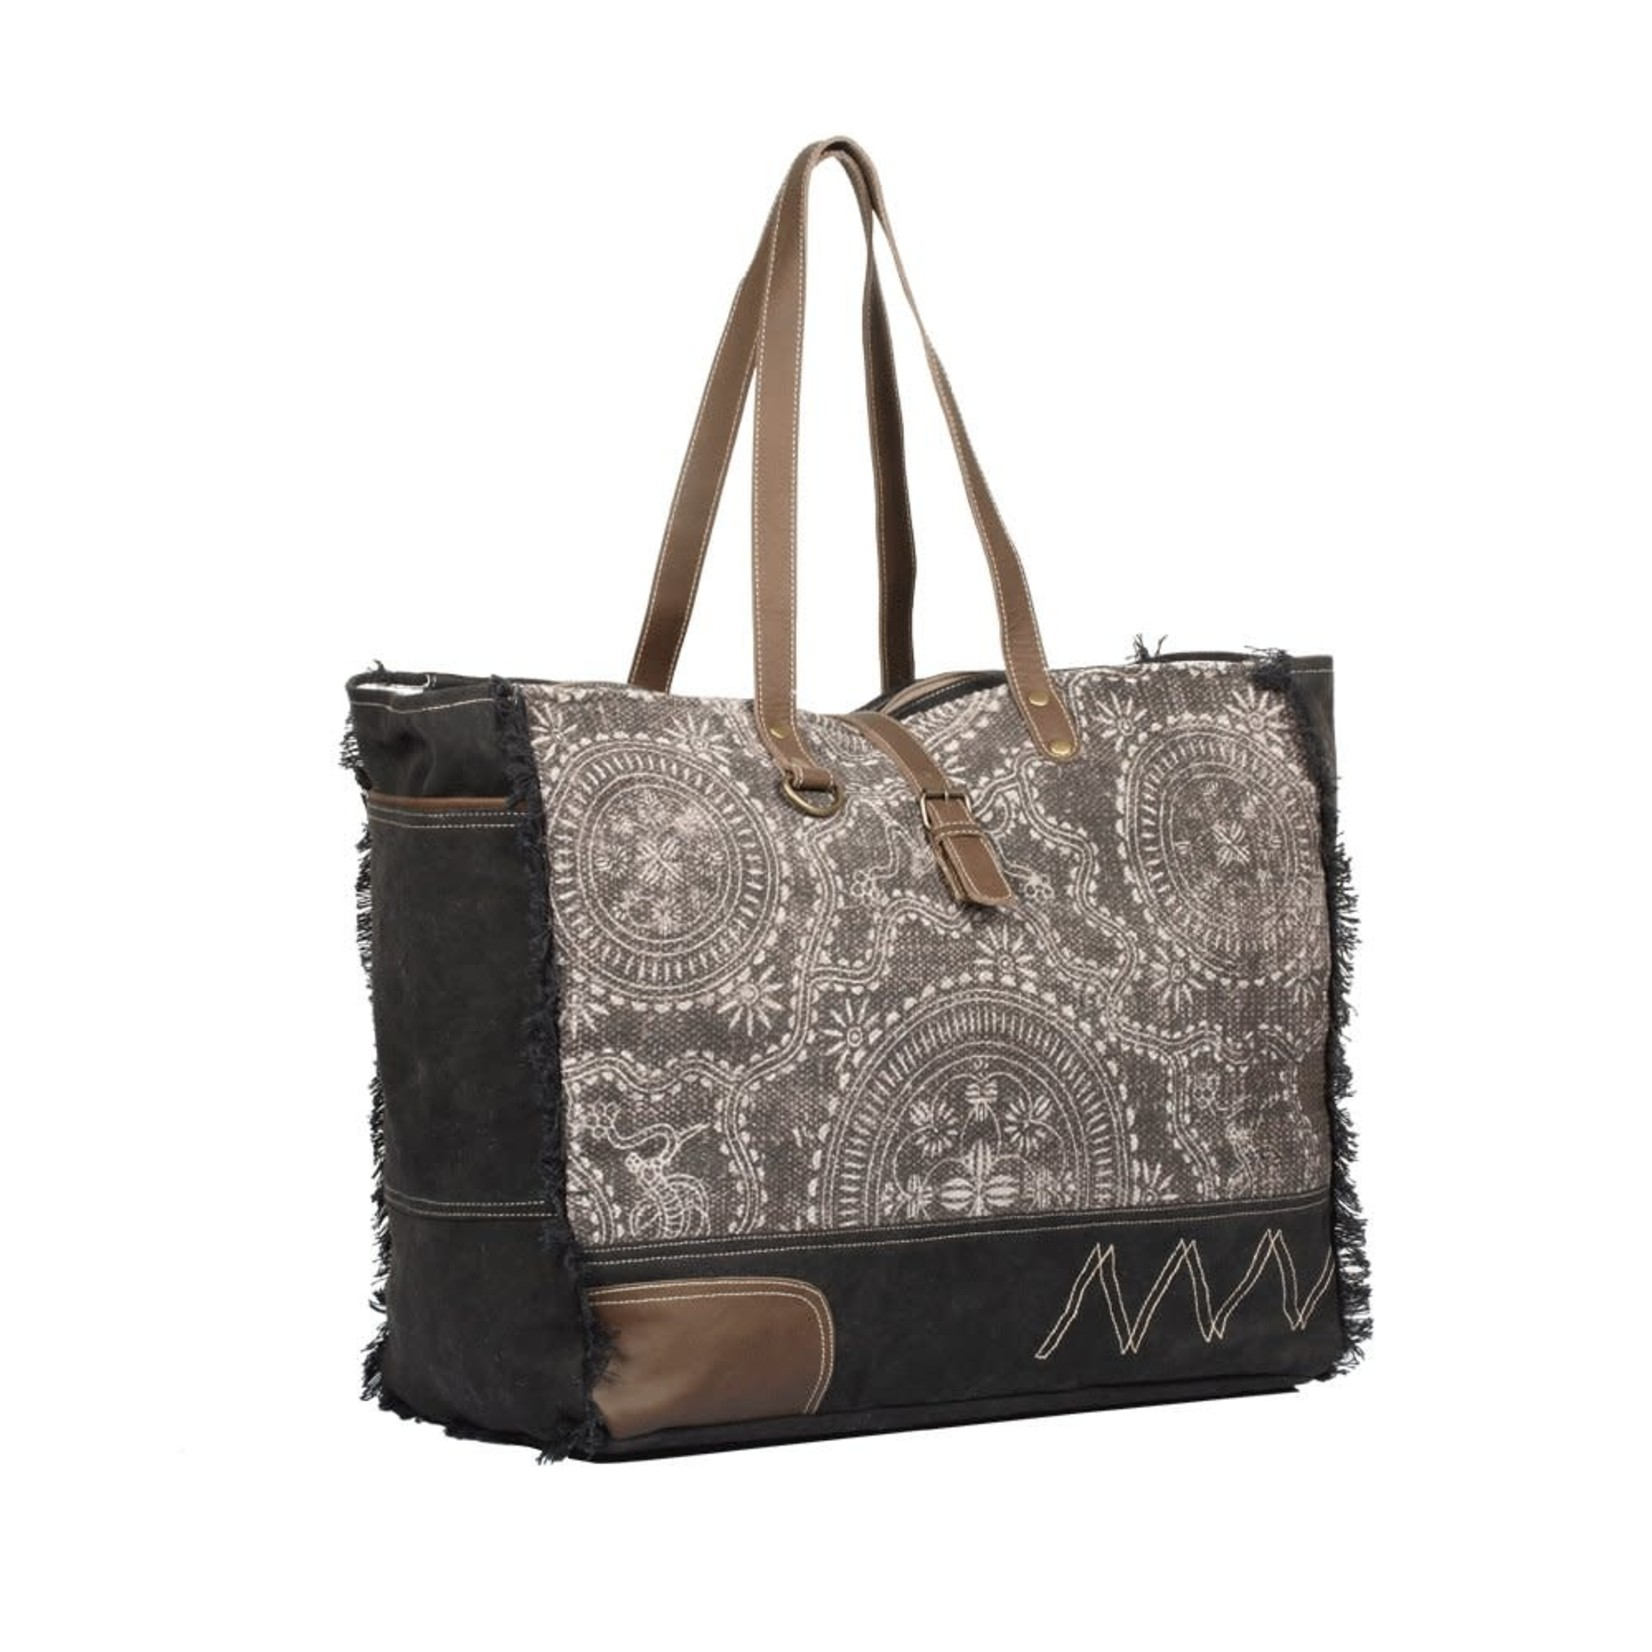 Myra Bags S-1329 Gleam Floral Weekender Bag